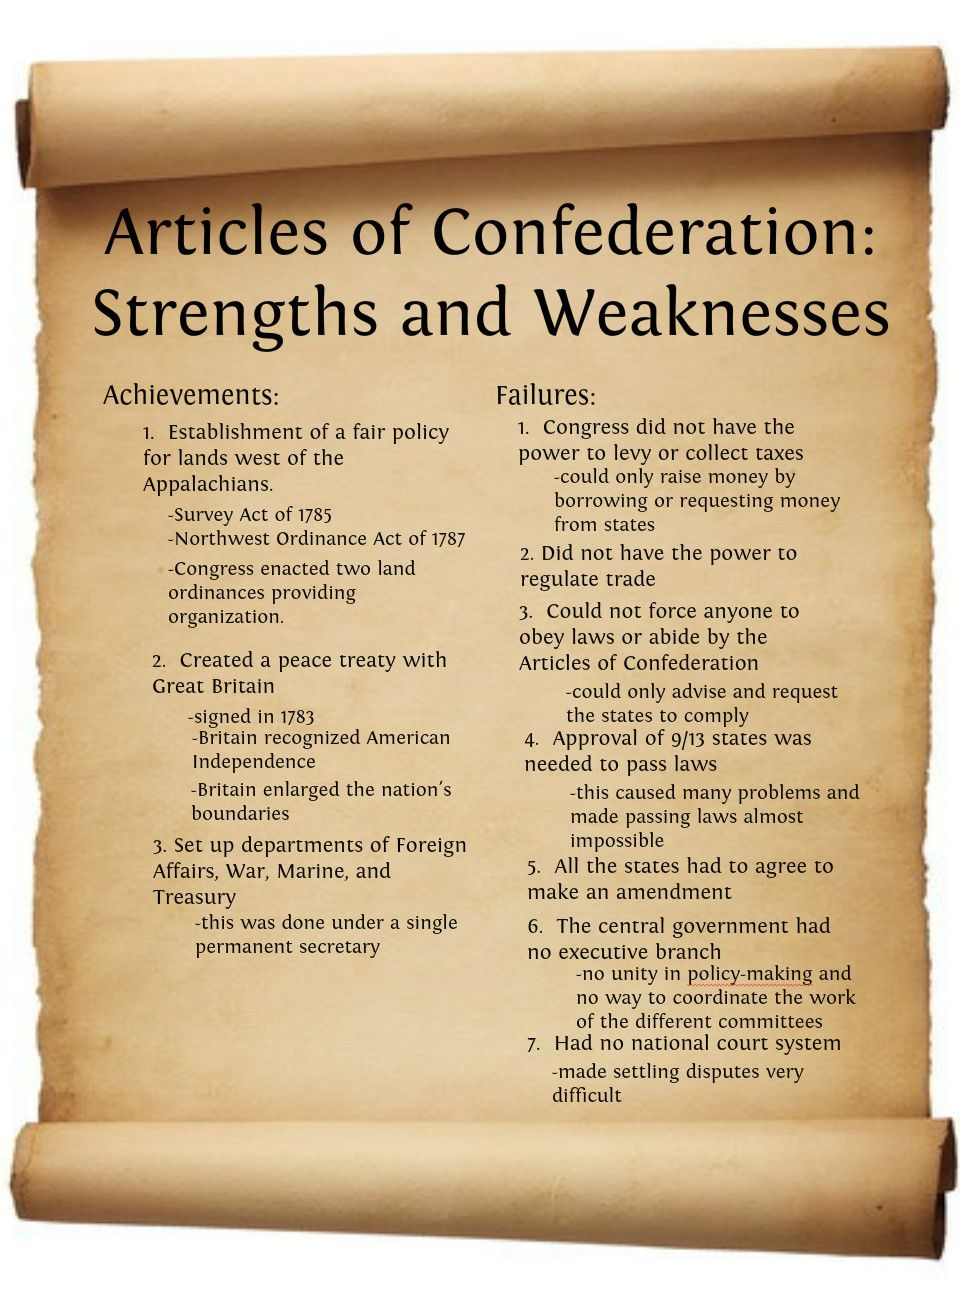 a history of the article of confederation Articles of confederation before the us constitution before the united states had a constitution, it relied on the articles of confederationagreed to by congress november 15, 1777, and in force after ratification by maryland march 1, 1781, the articles served as a bridge between the initial government by the continental congress of the revolutionary period and the federal government .